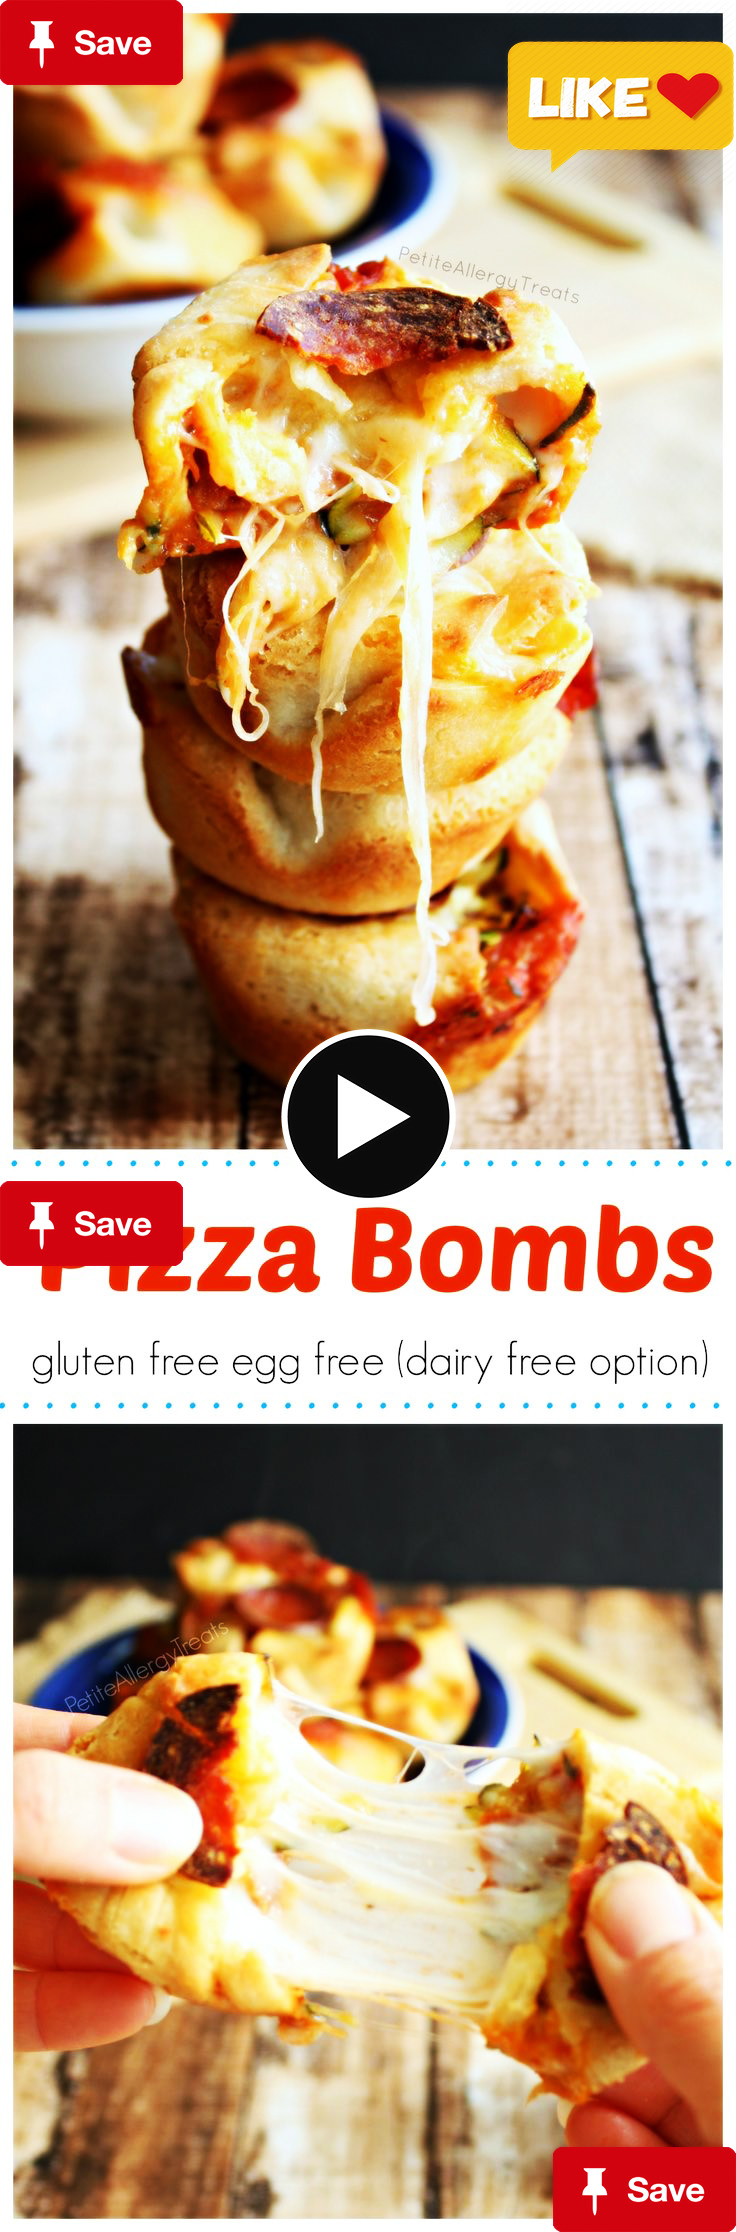 Pizza Bomb Bites (glPizza Bomb Bites (gluten free egg free, dairy free option)- Pizza pockets filled with gooey cheese and vegetables